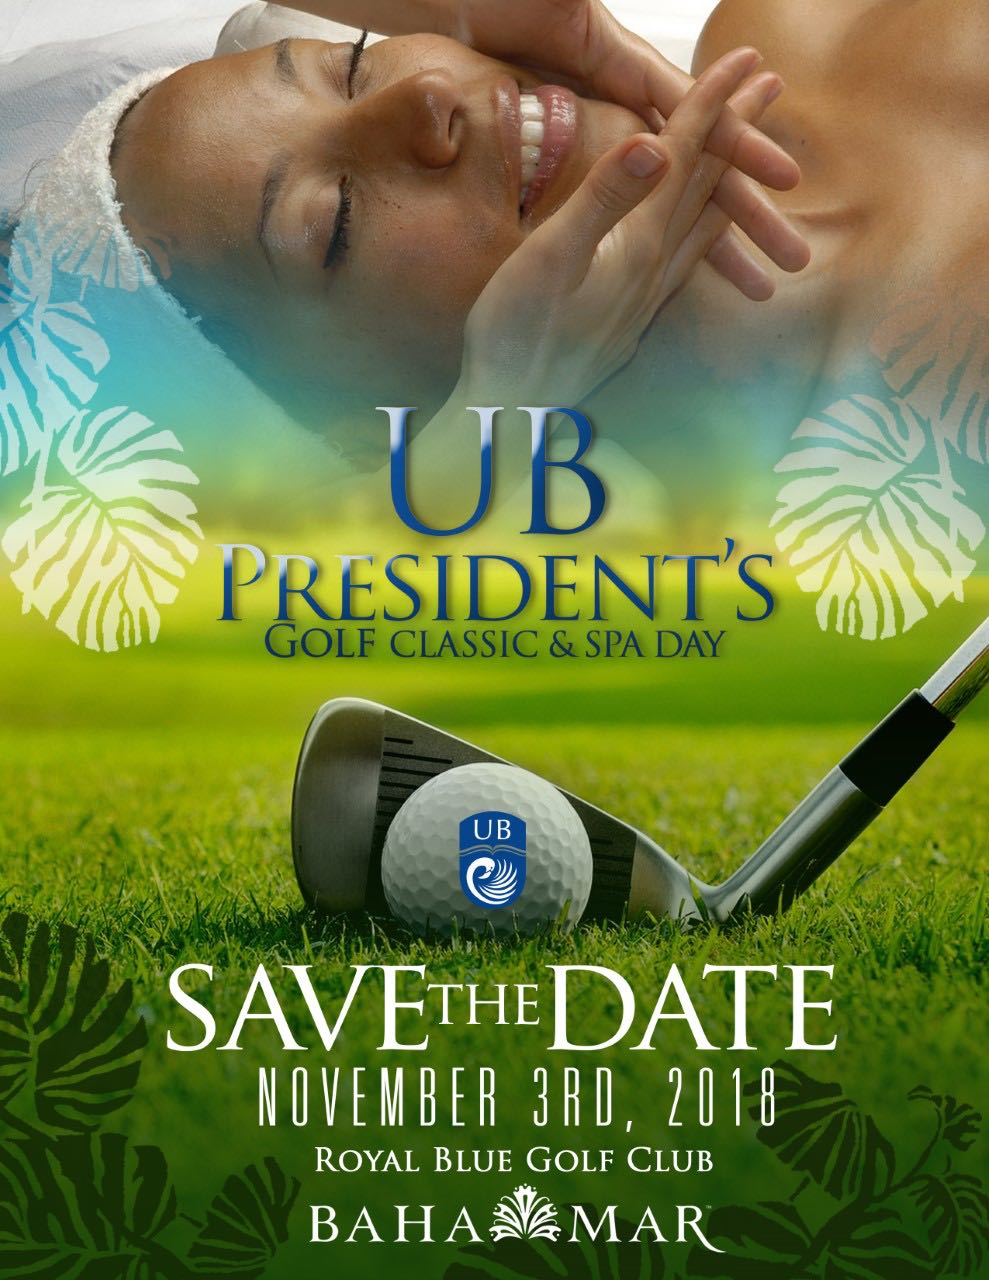 UB President's Golf Classic & Spa Day